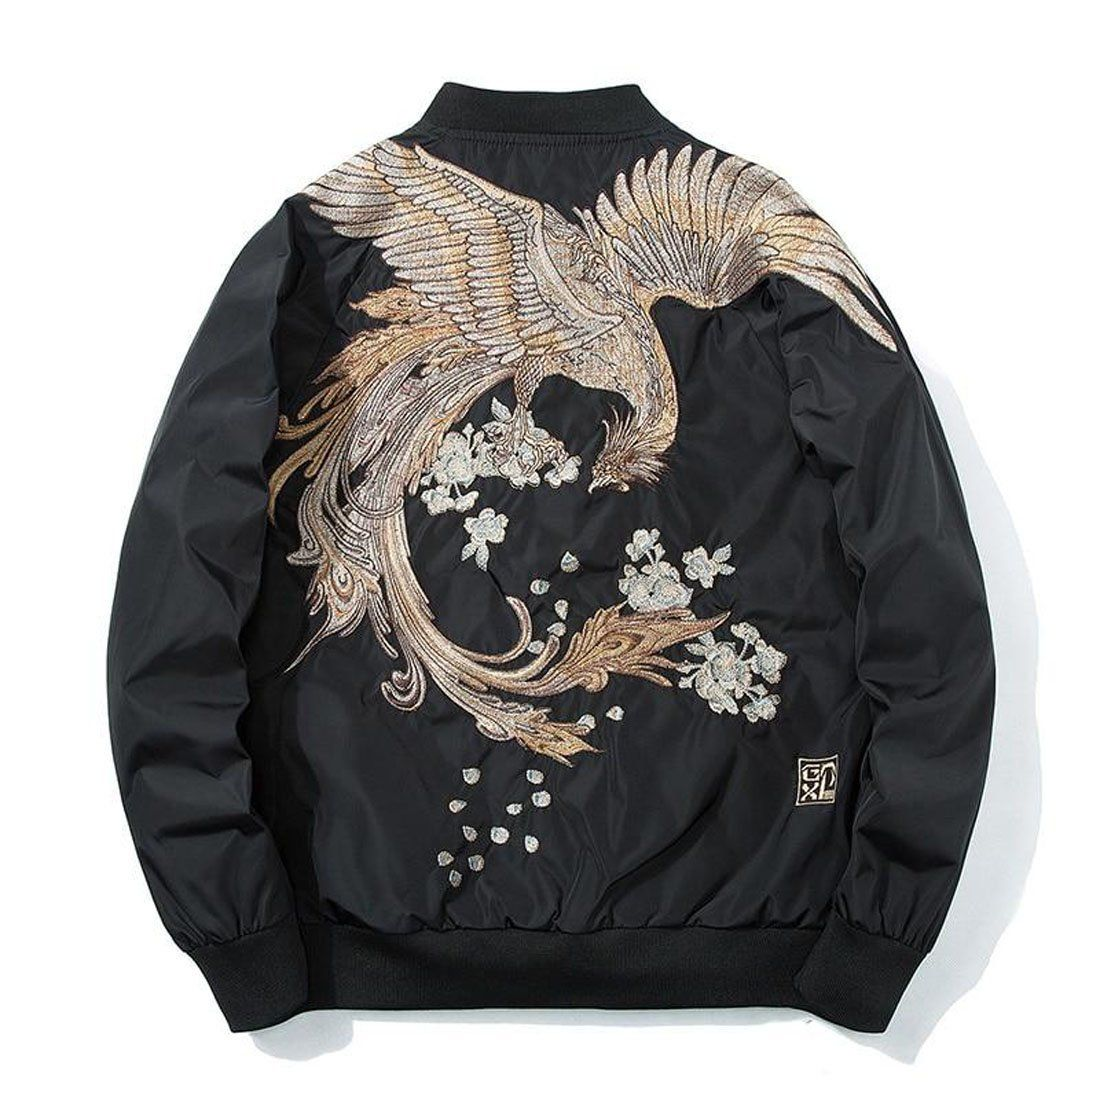 Men S Jacket High Street Phoenix Embroidery Plus Size Casual Outwear Hip Hop For Spring Jackets Fashion Casual Japanese Bomber Jacket Spring Bomber Jacket [ 1100 x 1100 Pixel ]